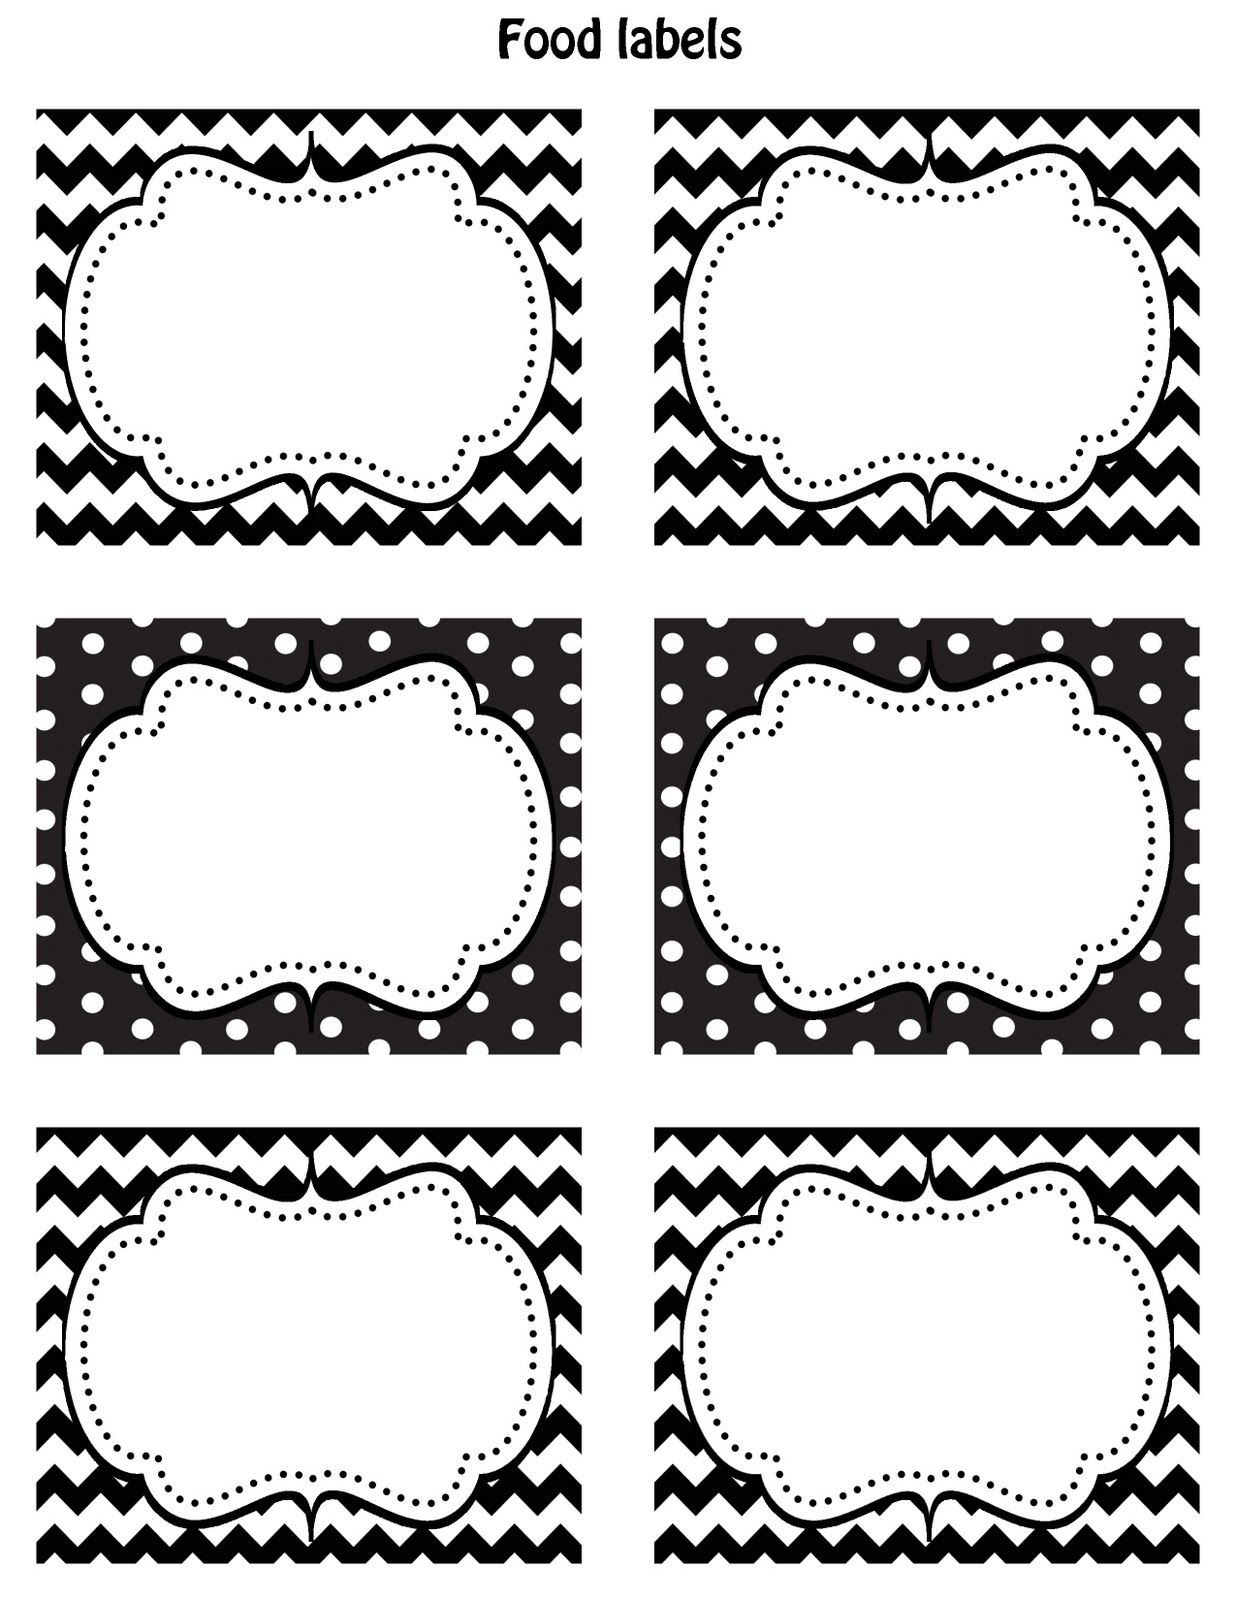 picture about Printable Food Labels called Who doesnt such as Black and White?? Therefore I concept I would